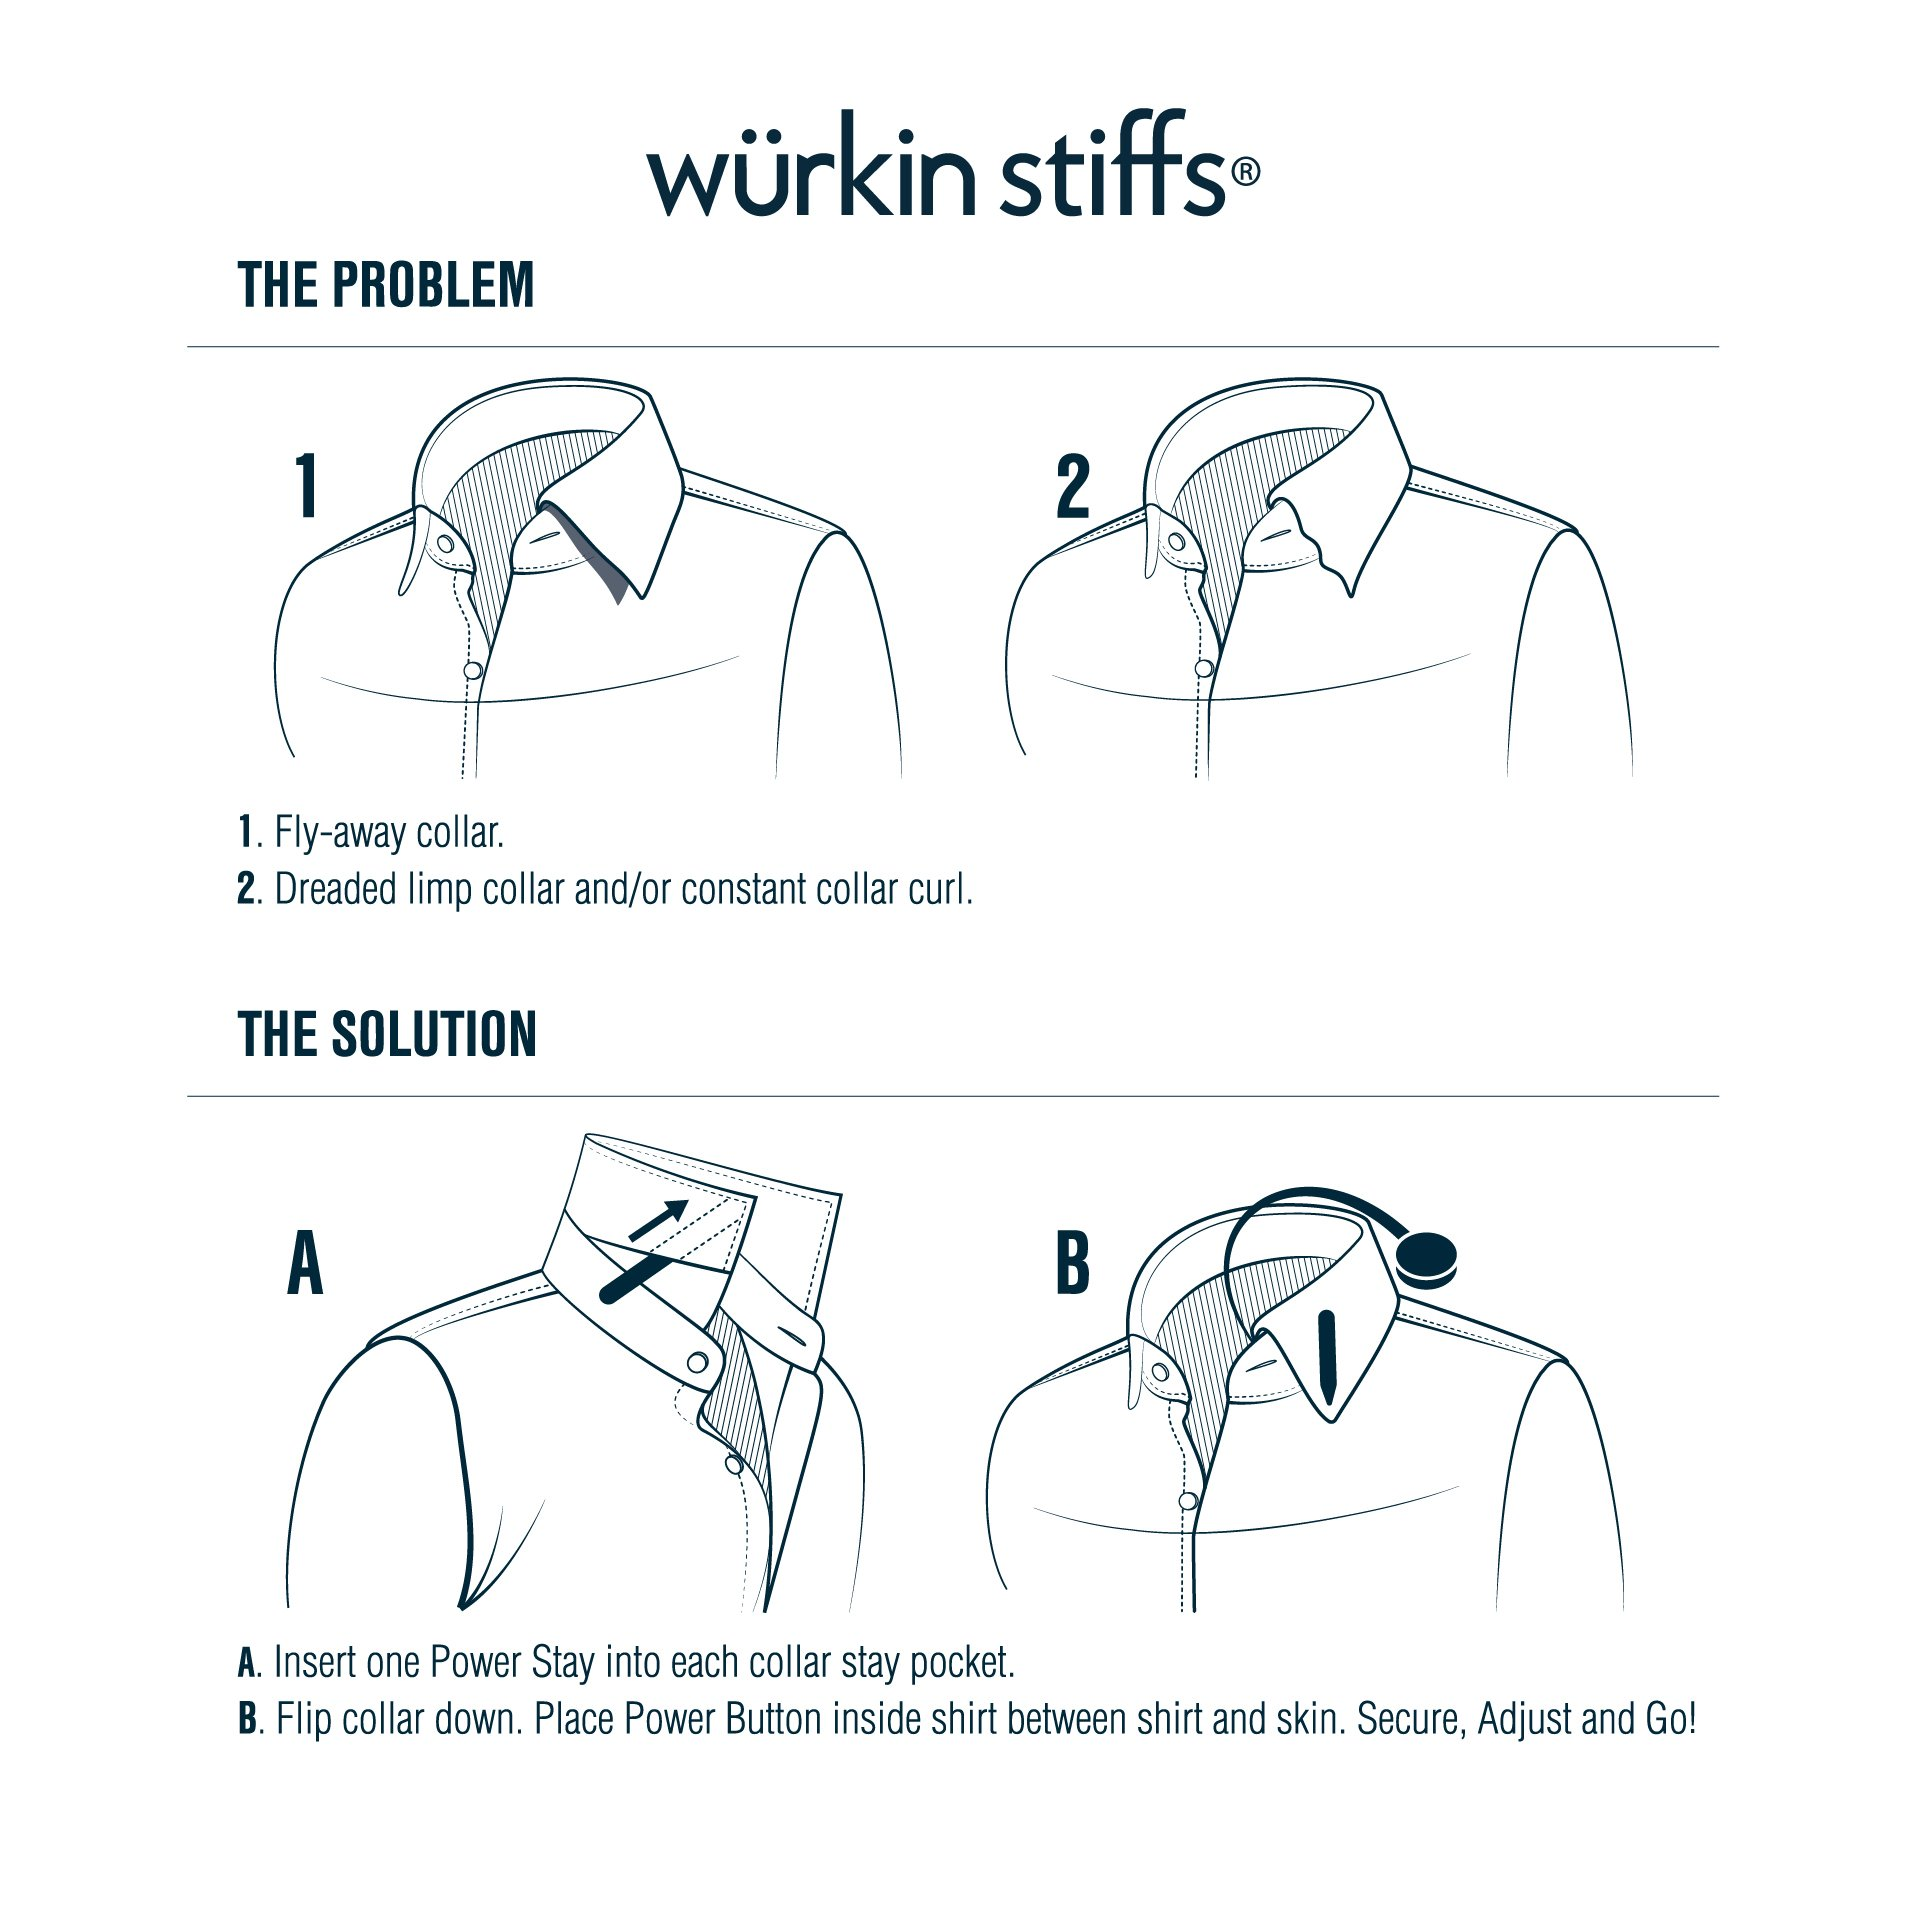 Wurkin Stiffs 2.5-inch Power Collar Stays 3 Pairs